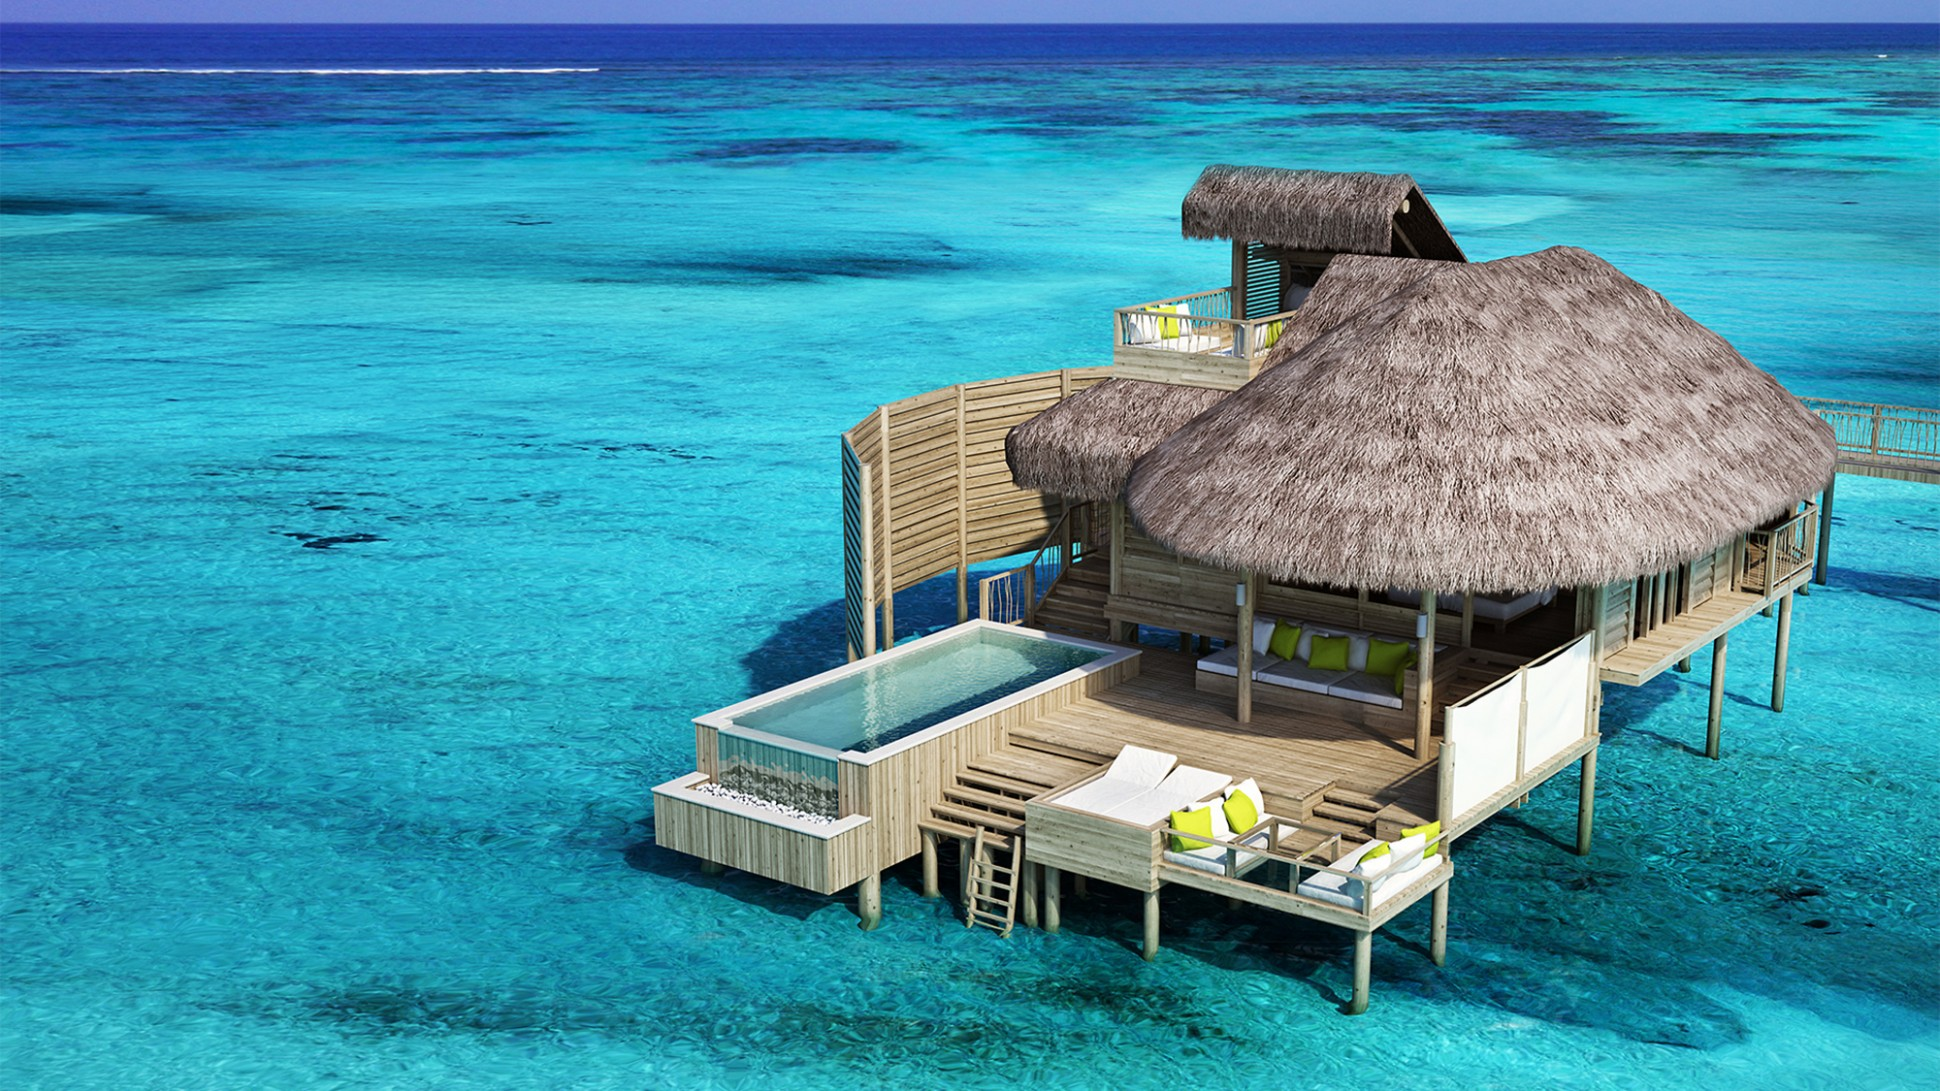 The Tropical Overwater Bungalow Long A Symbol Of Relaxation And Luxury Turns 50 All About Playa Del Carmen